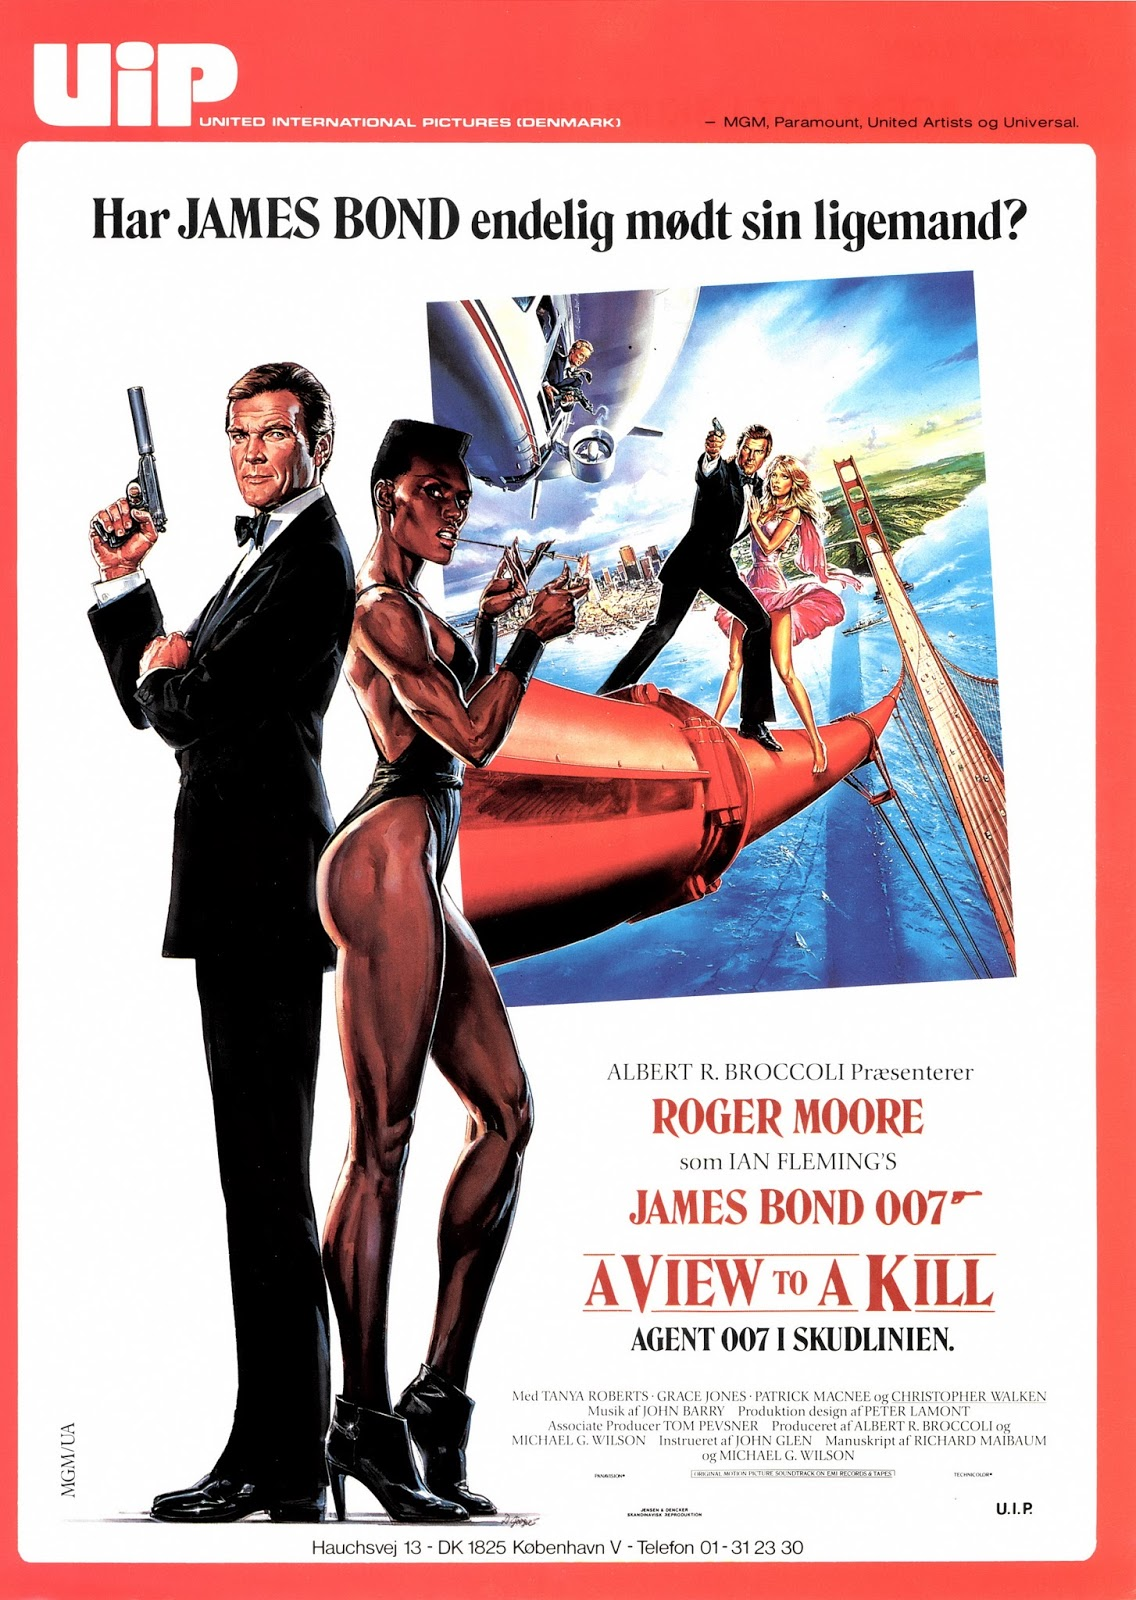 A View From The Beach 17 Will Get You 20: James Bond-O-Rama.dk